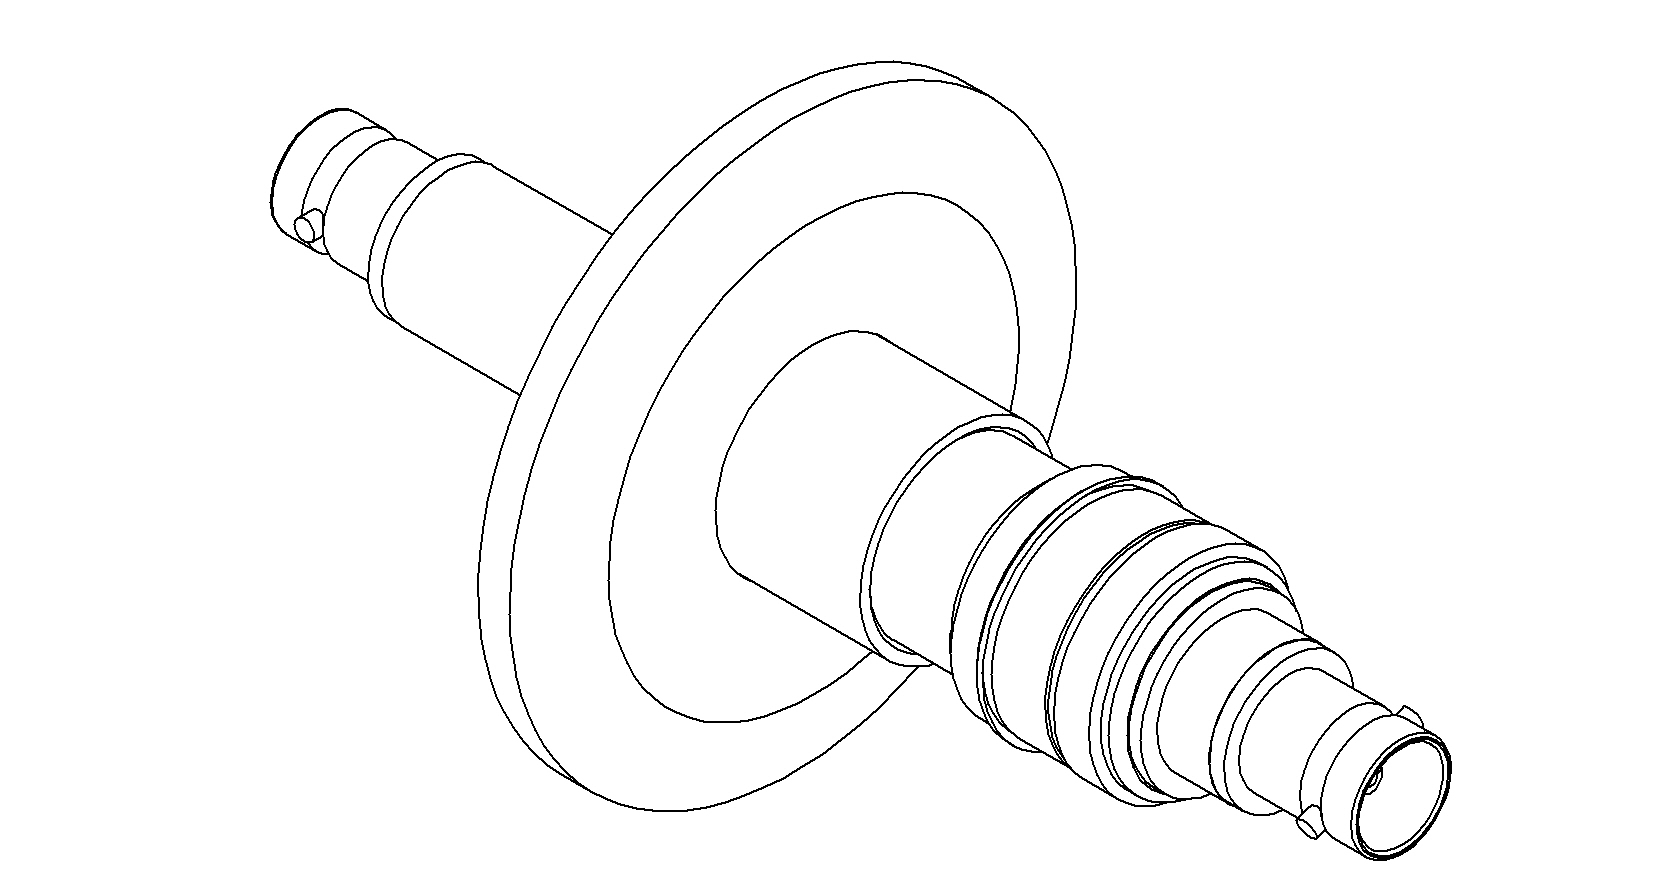 1 Pin Coaxial Bnc Quick Flange Double Ended Feedthrough Floating Shield